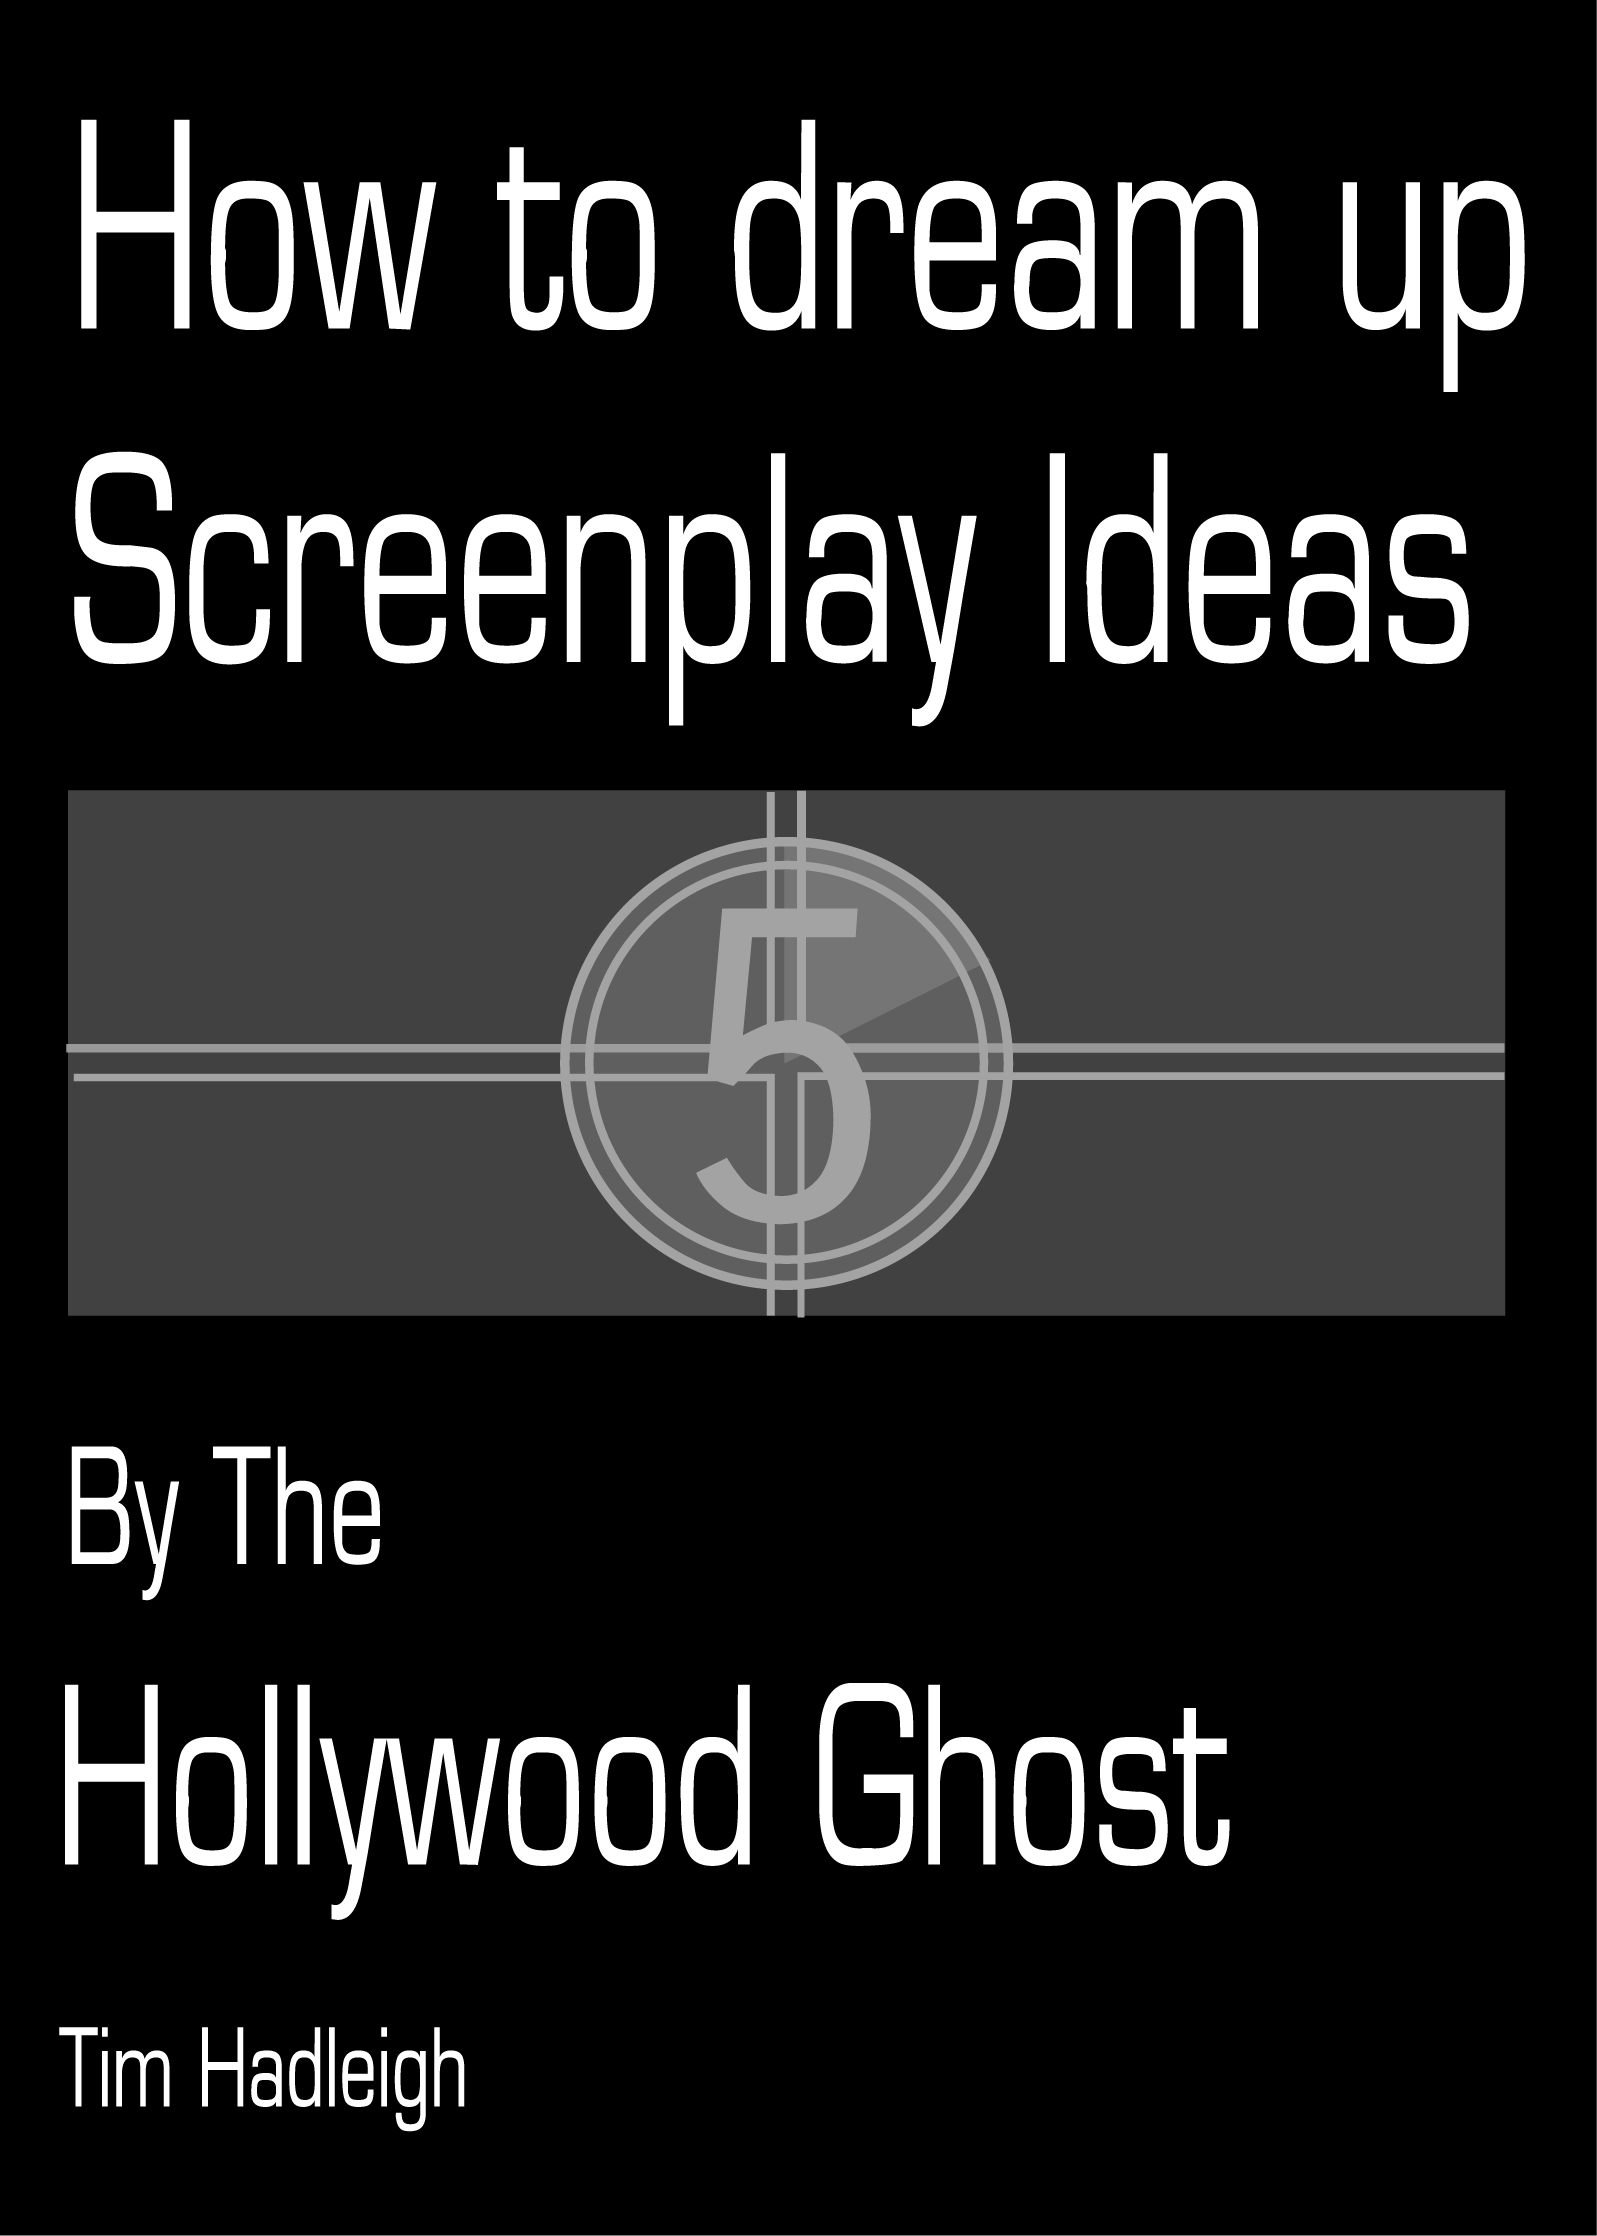 How to dream up screenplay ideas